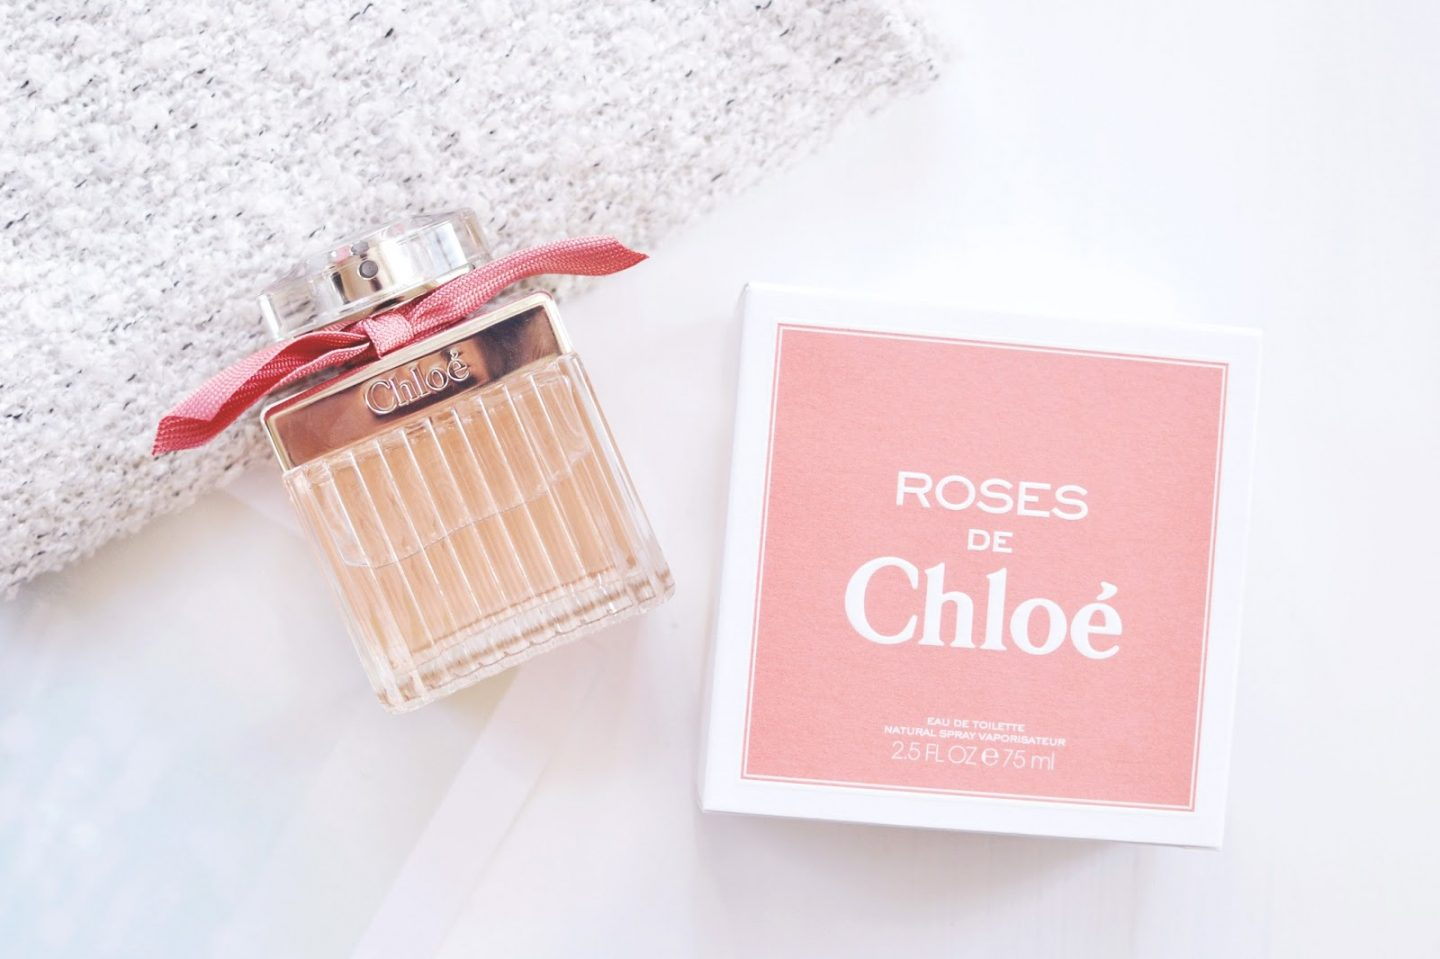 Roses De Chloé Perfume A Rose Perfume With A Modern Twist